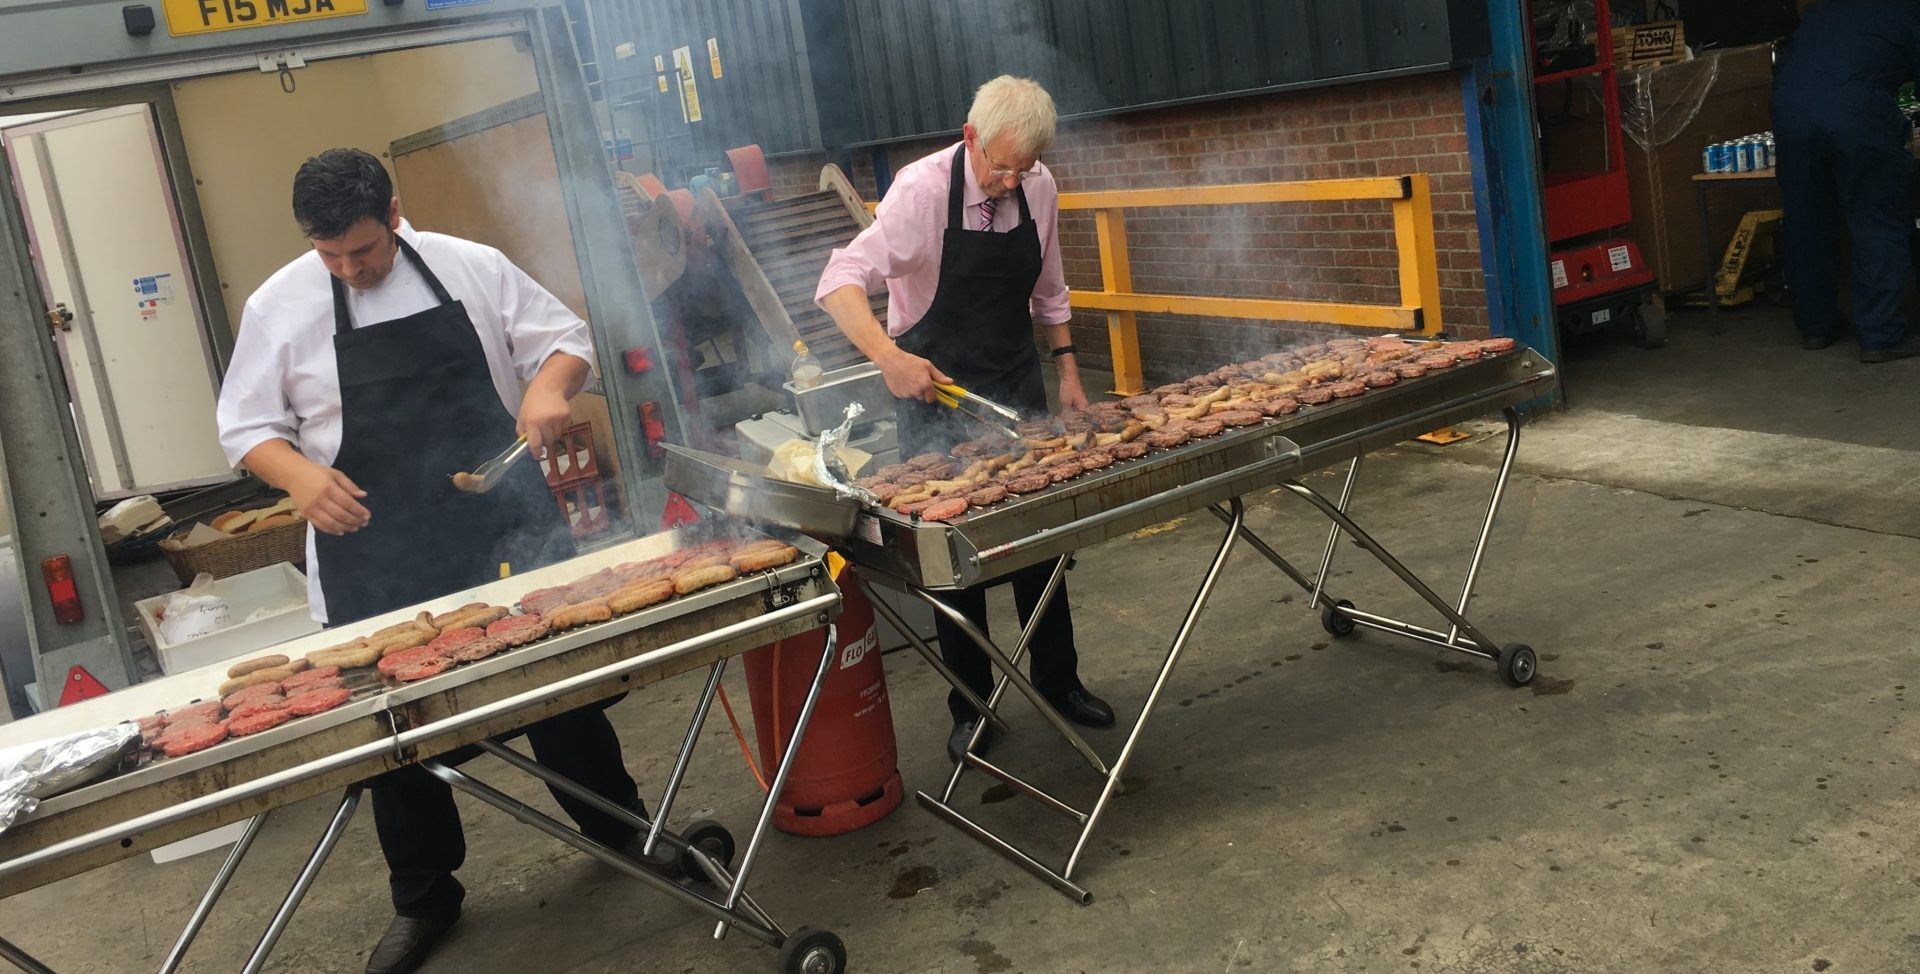 Tong Engineering Celebratory BBQ